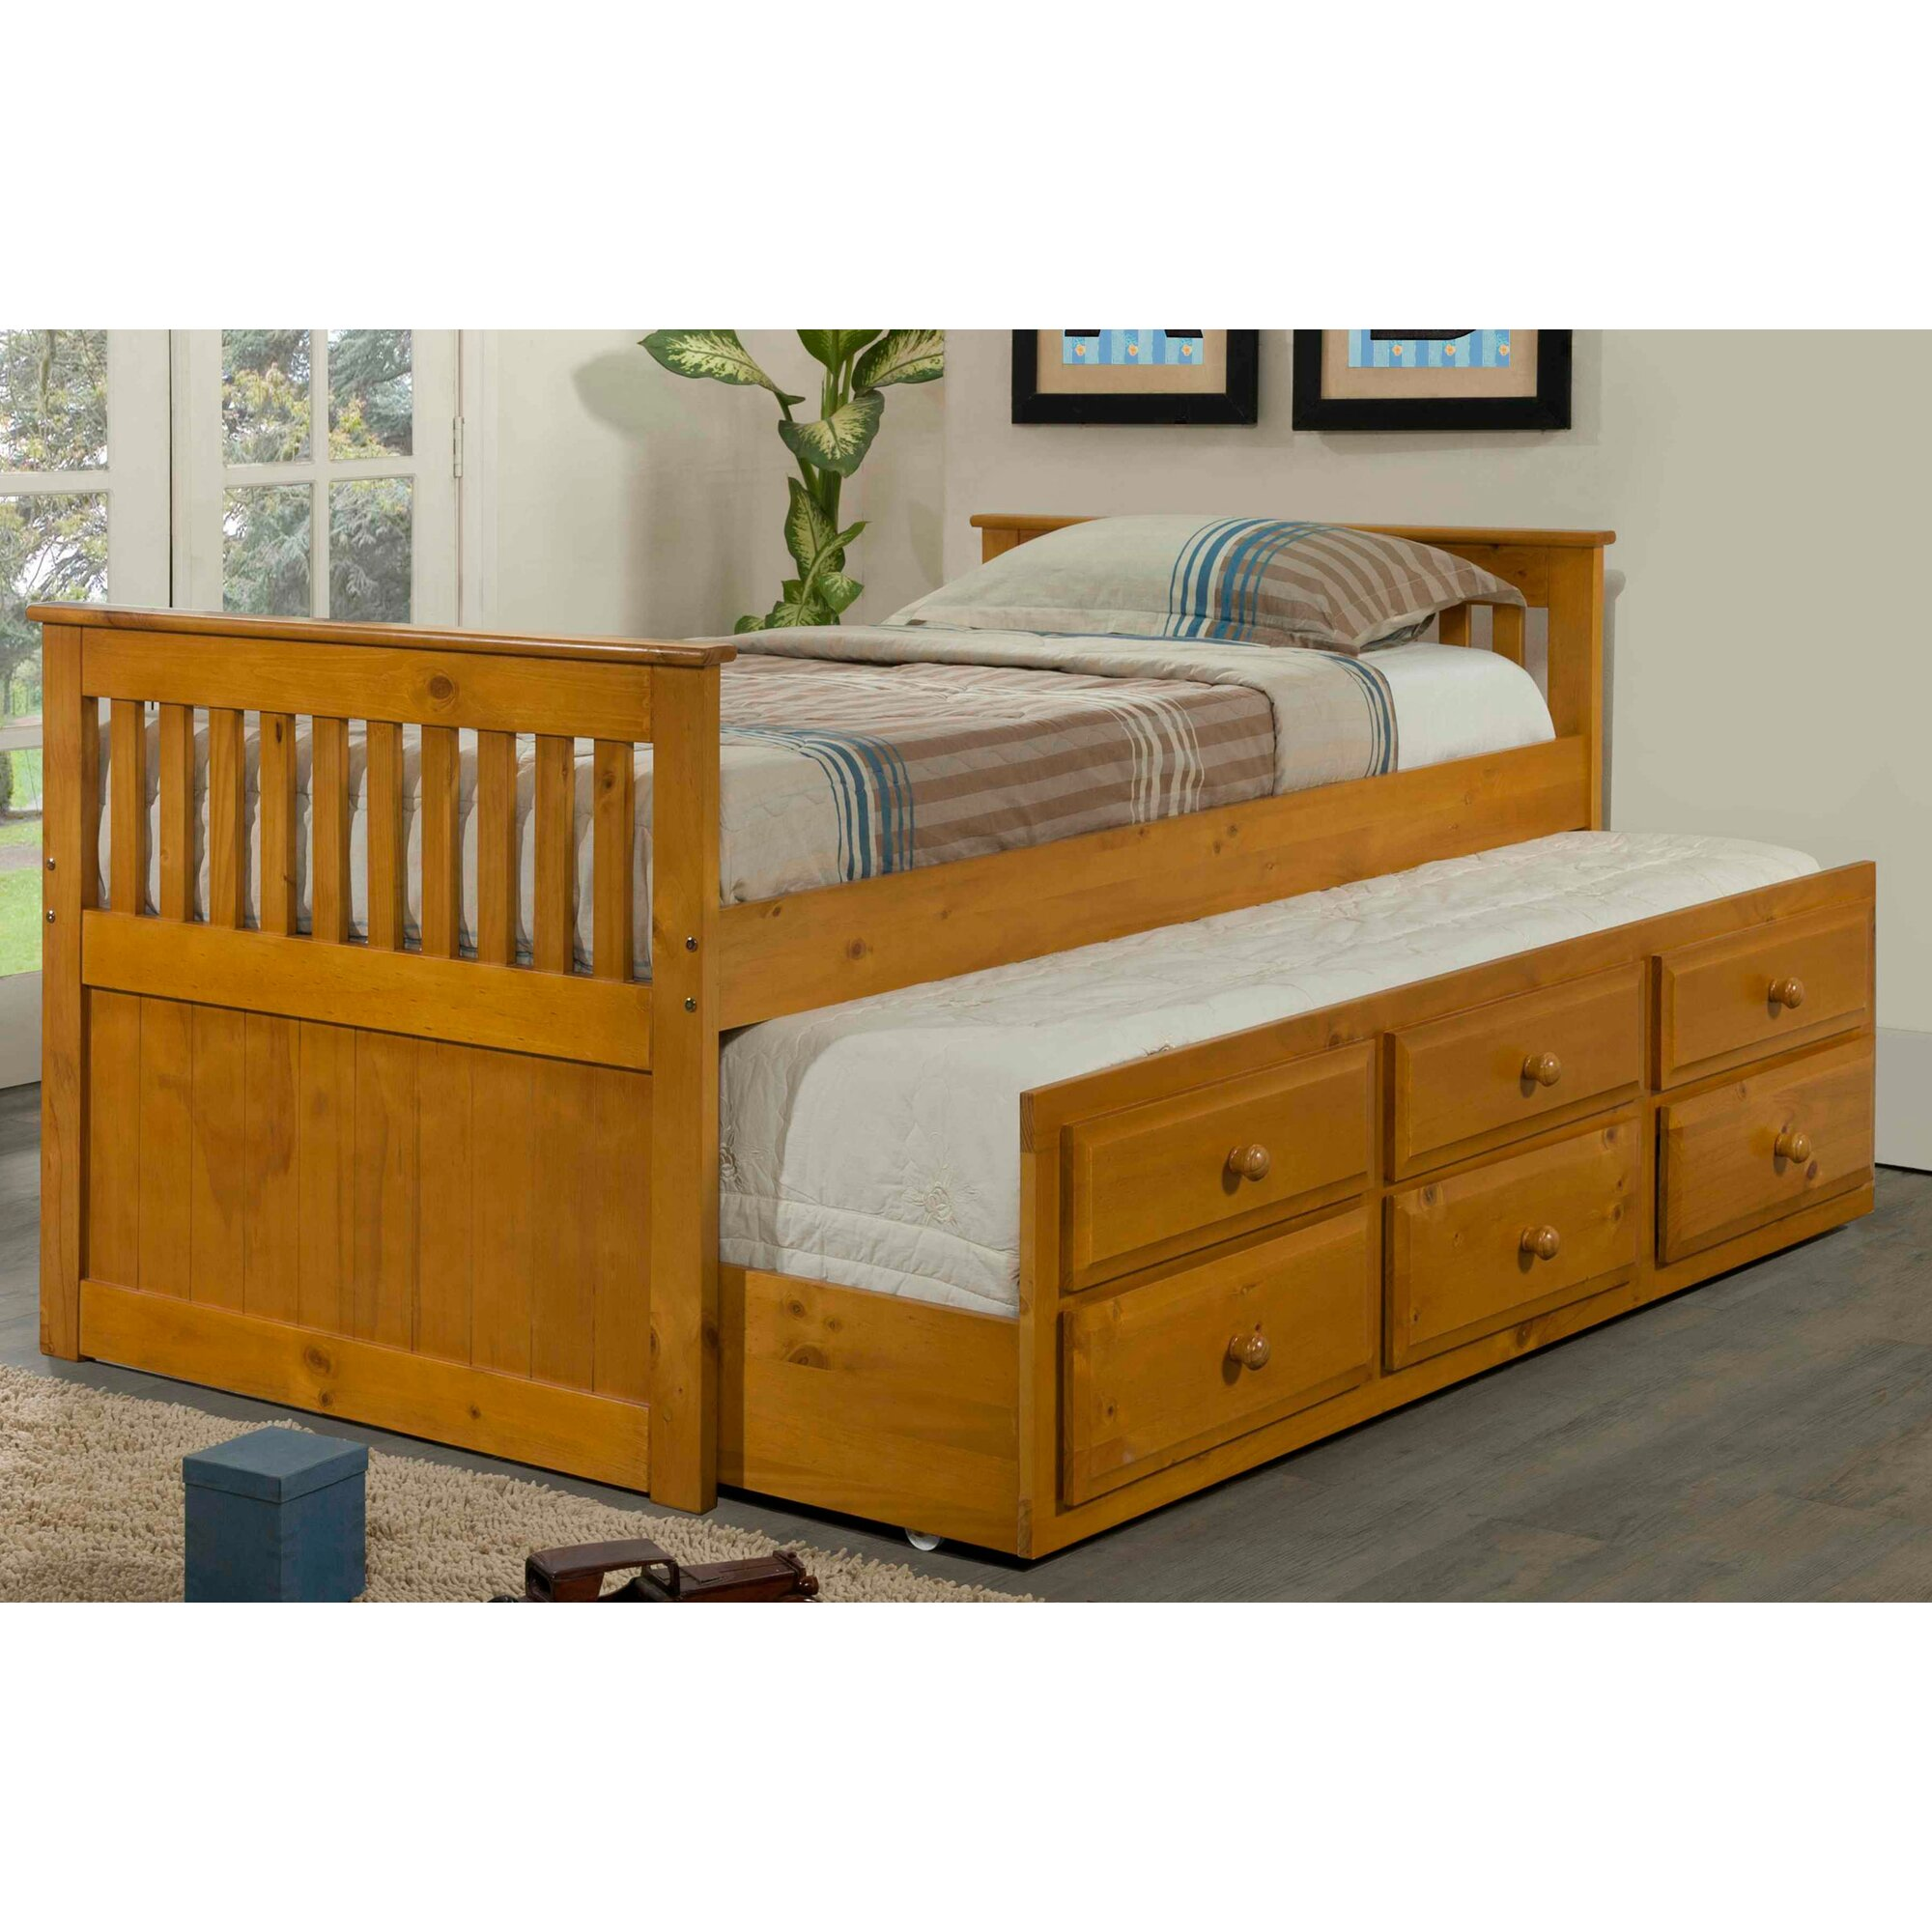 Washington twin over full bunk bed with trundle amp reviews wayfair -  Washington Twin Bunk Bed With Trundle Reviews Wayfair Captain Bed With Trundle